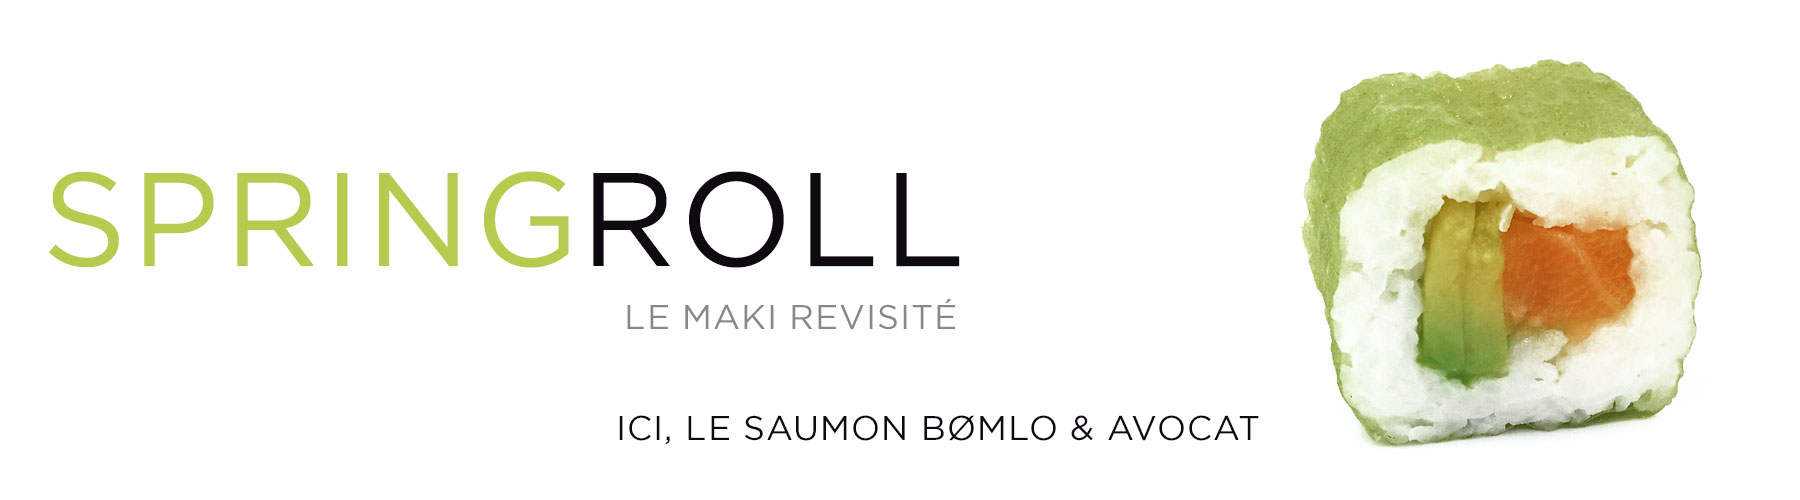 momento-sushi-08-spring-roll-1